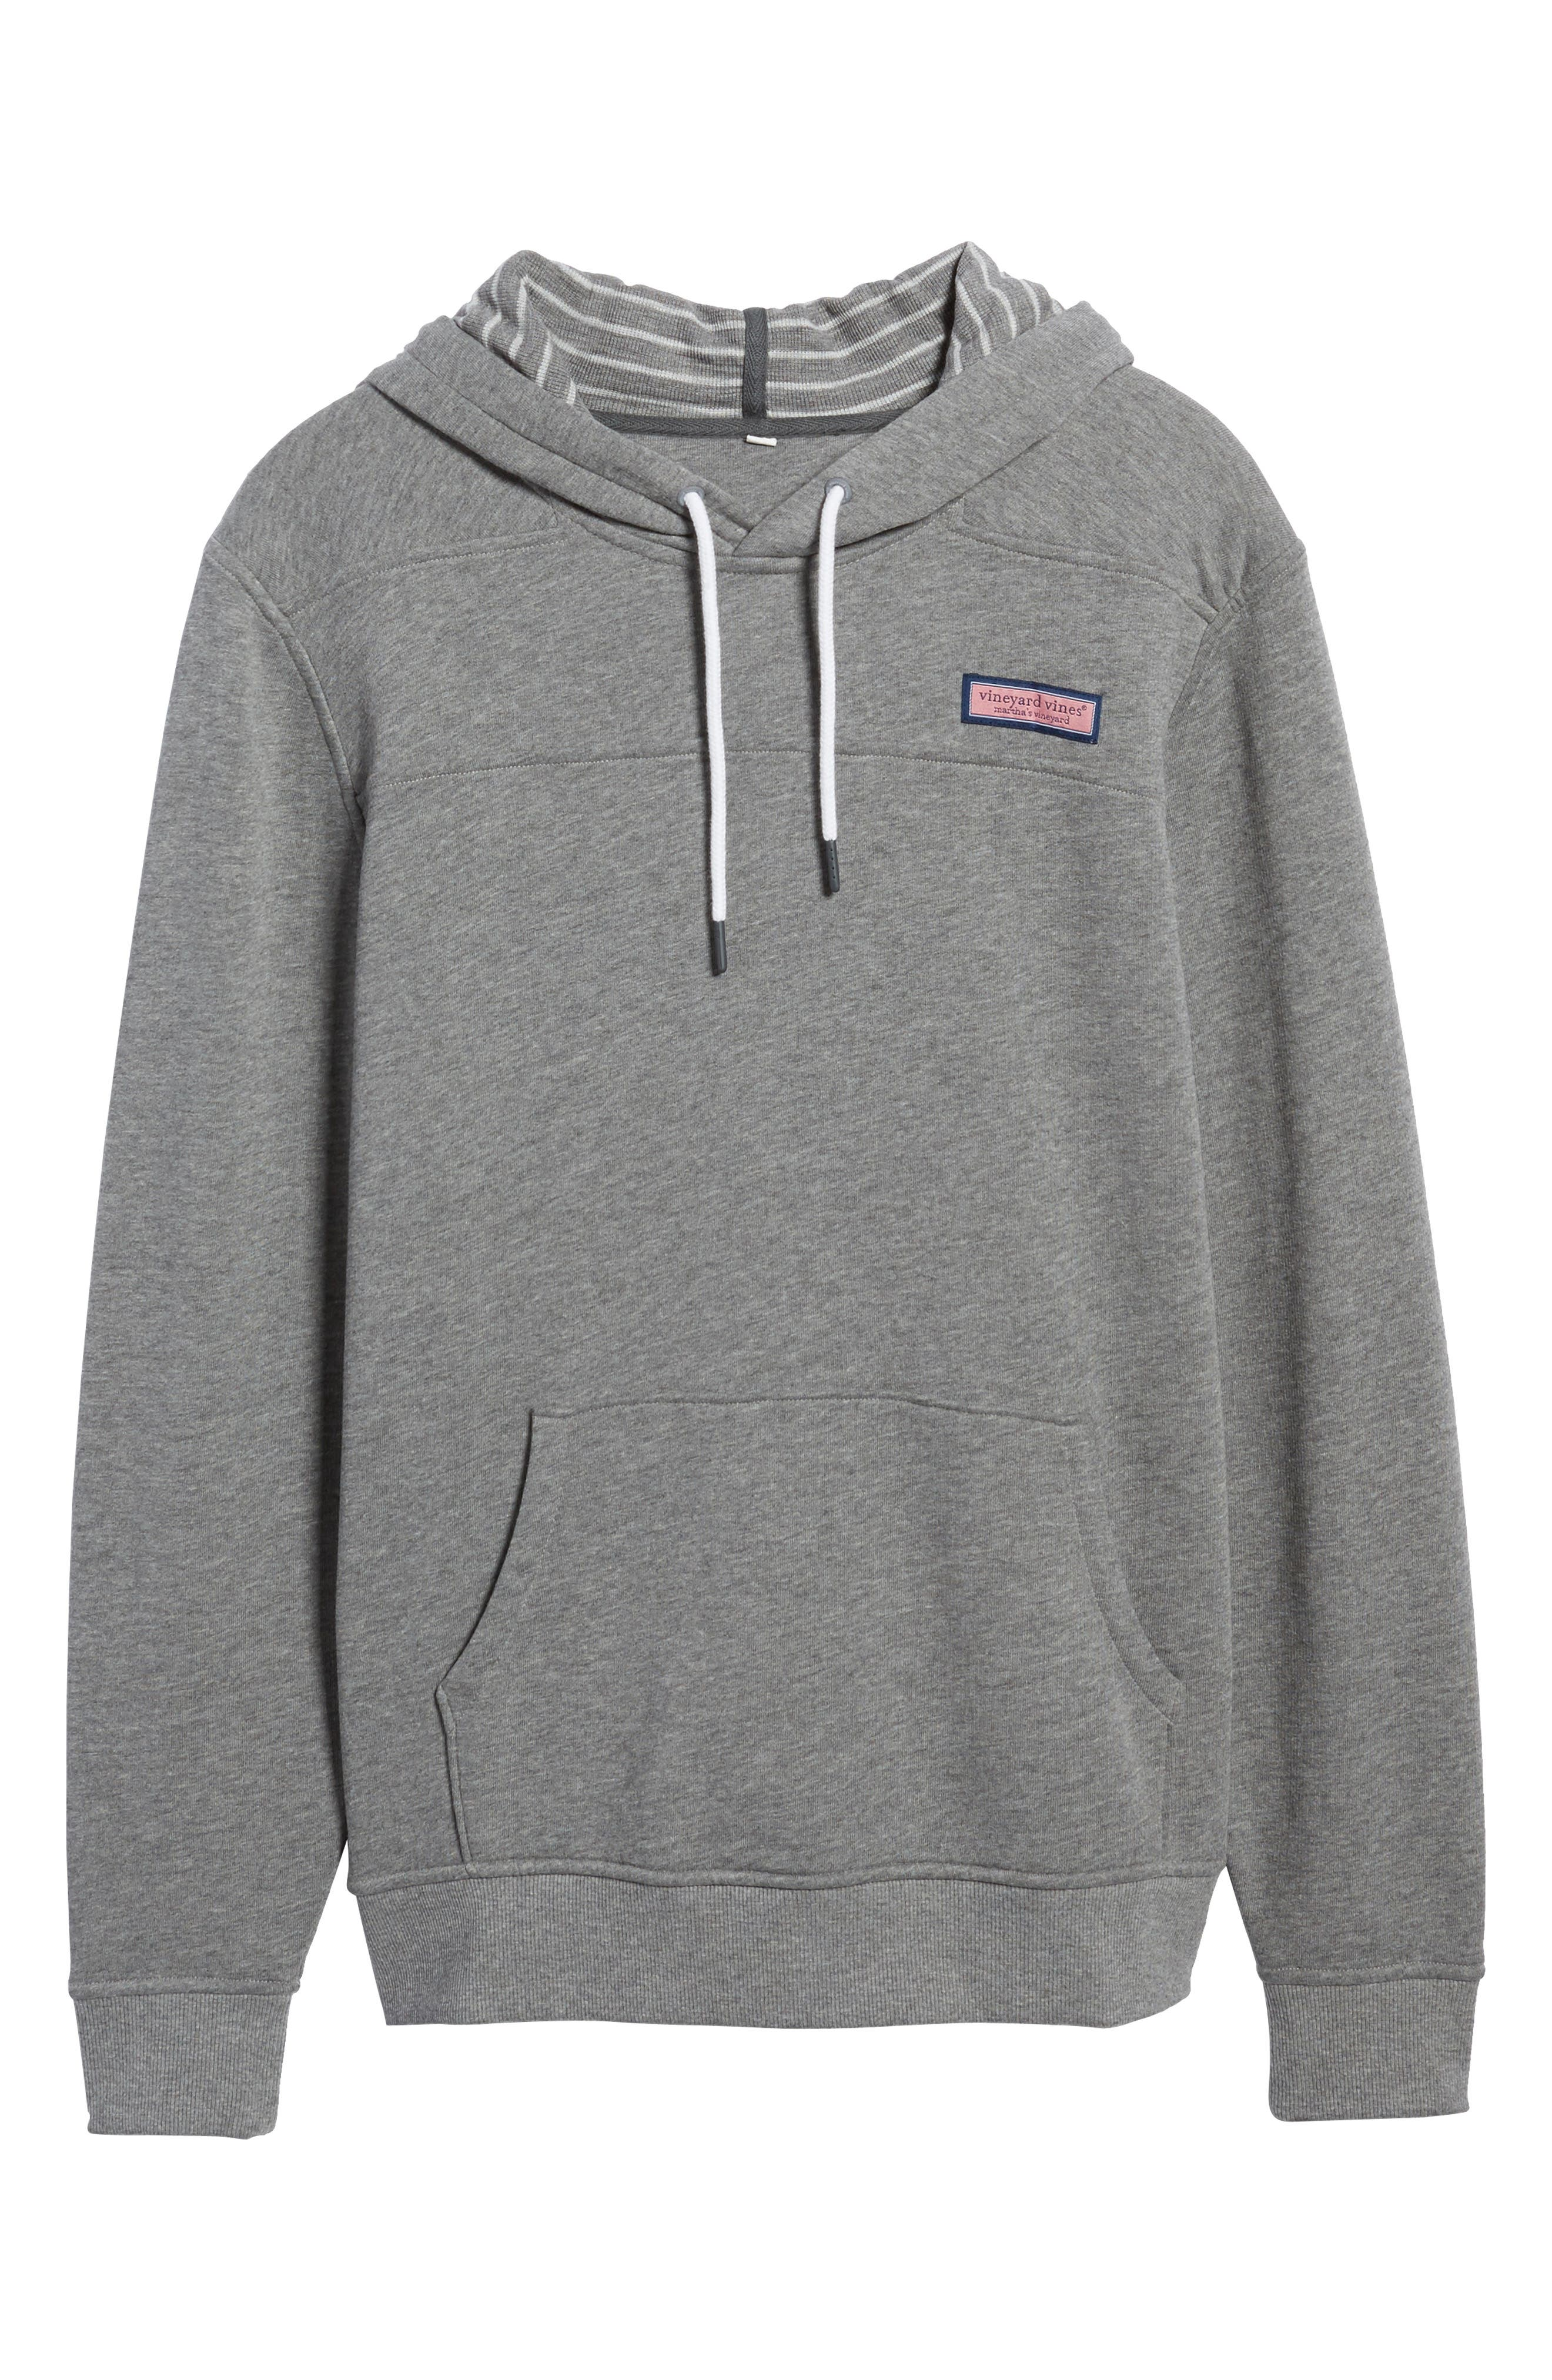 Washed Cotton Pullover Hoodie,                             Alternate thumbnail 6, color,                             030